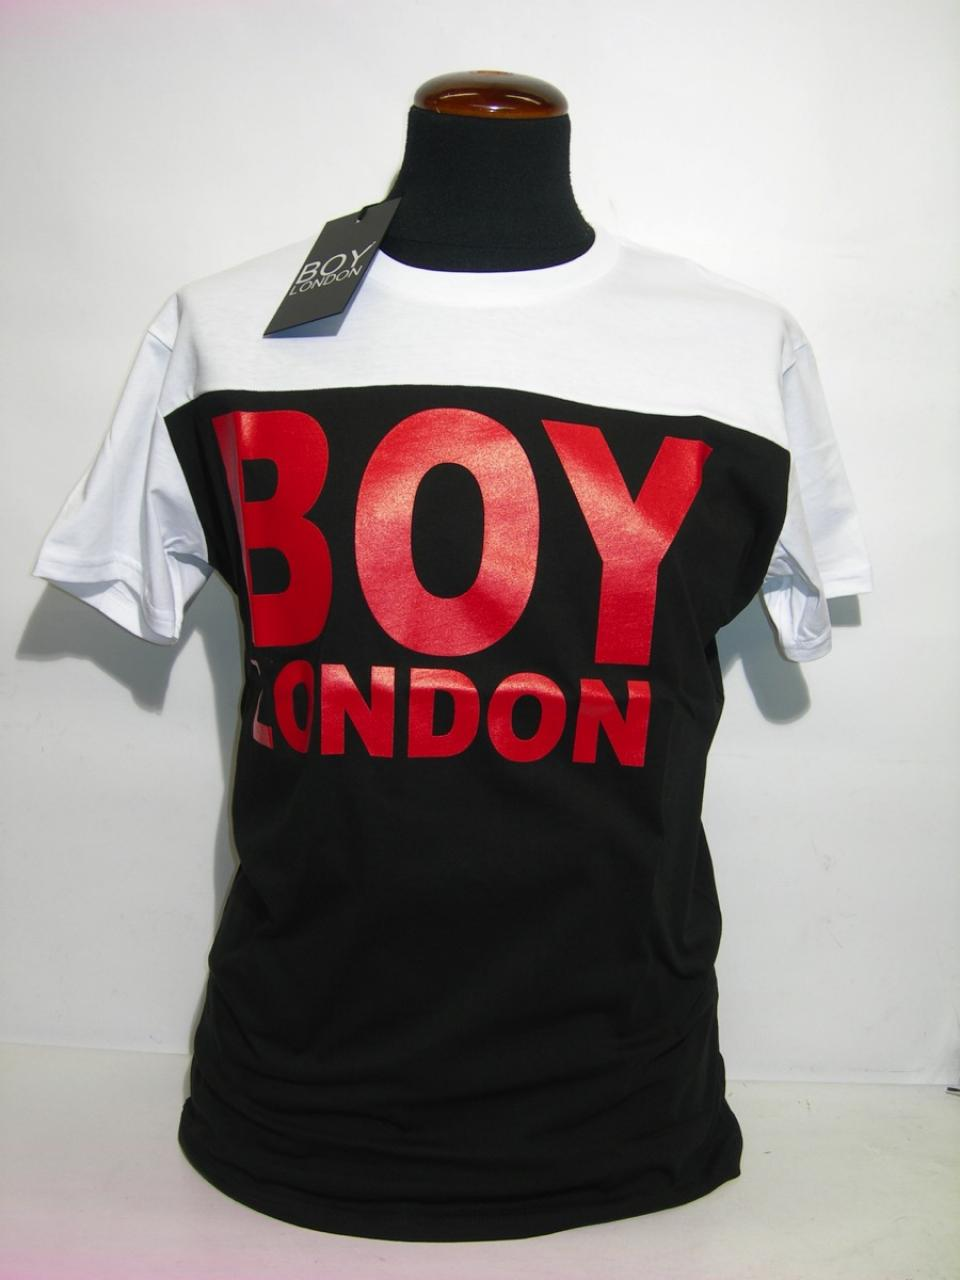 BOY LONDON BL1366-Boy London 9654-11.7-